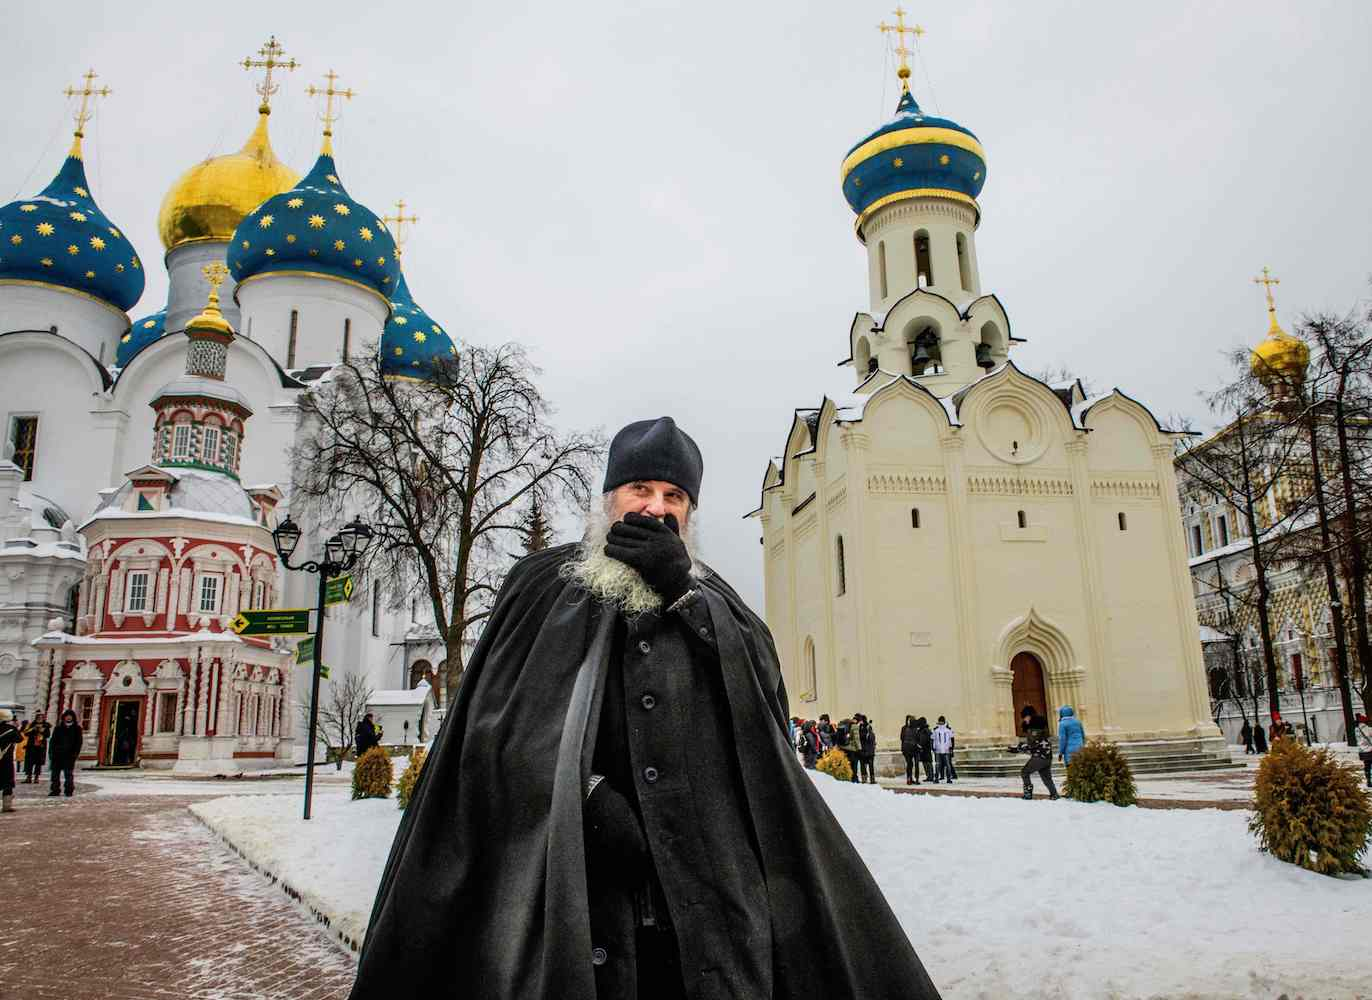 TOPSHOT-RUSSIA-RELIGION-ORTHODOXY